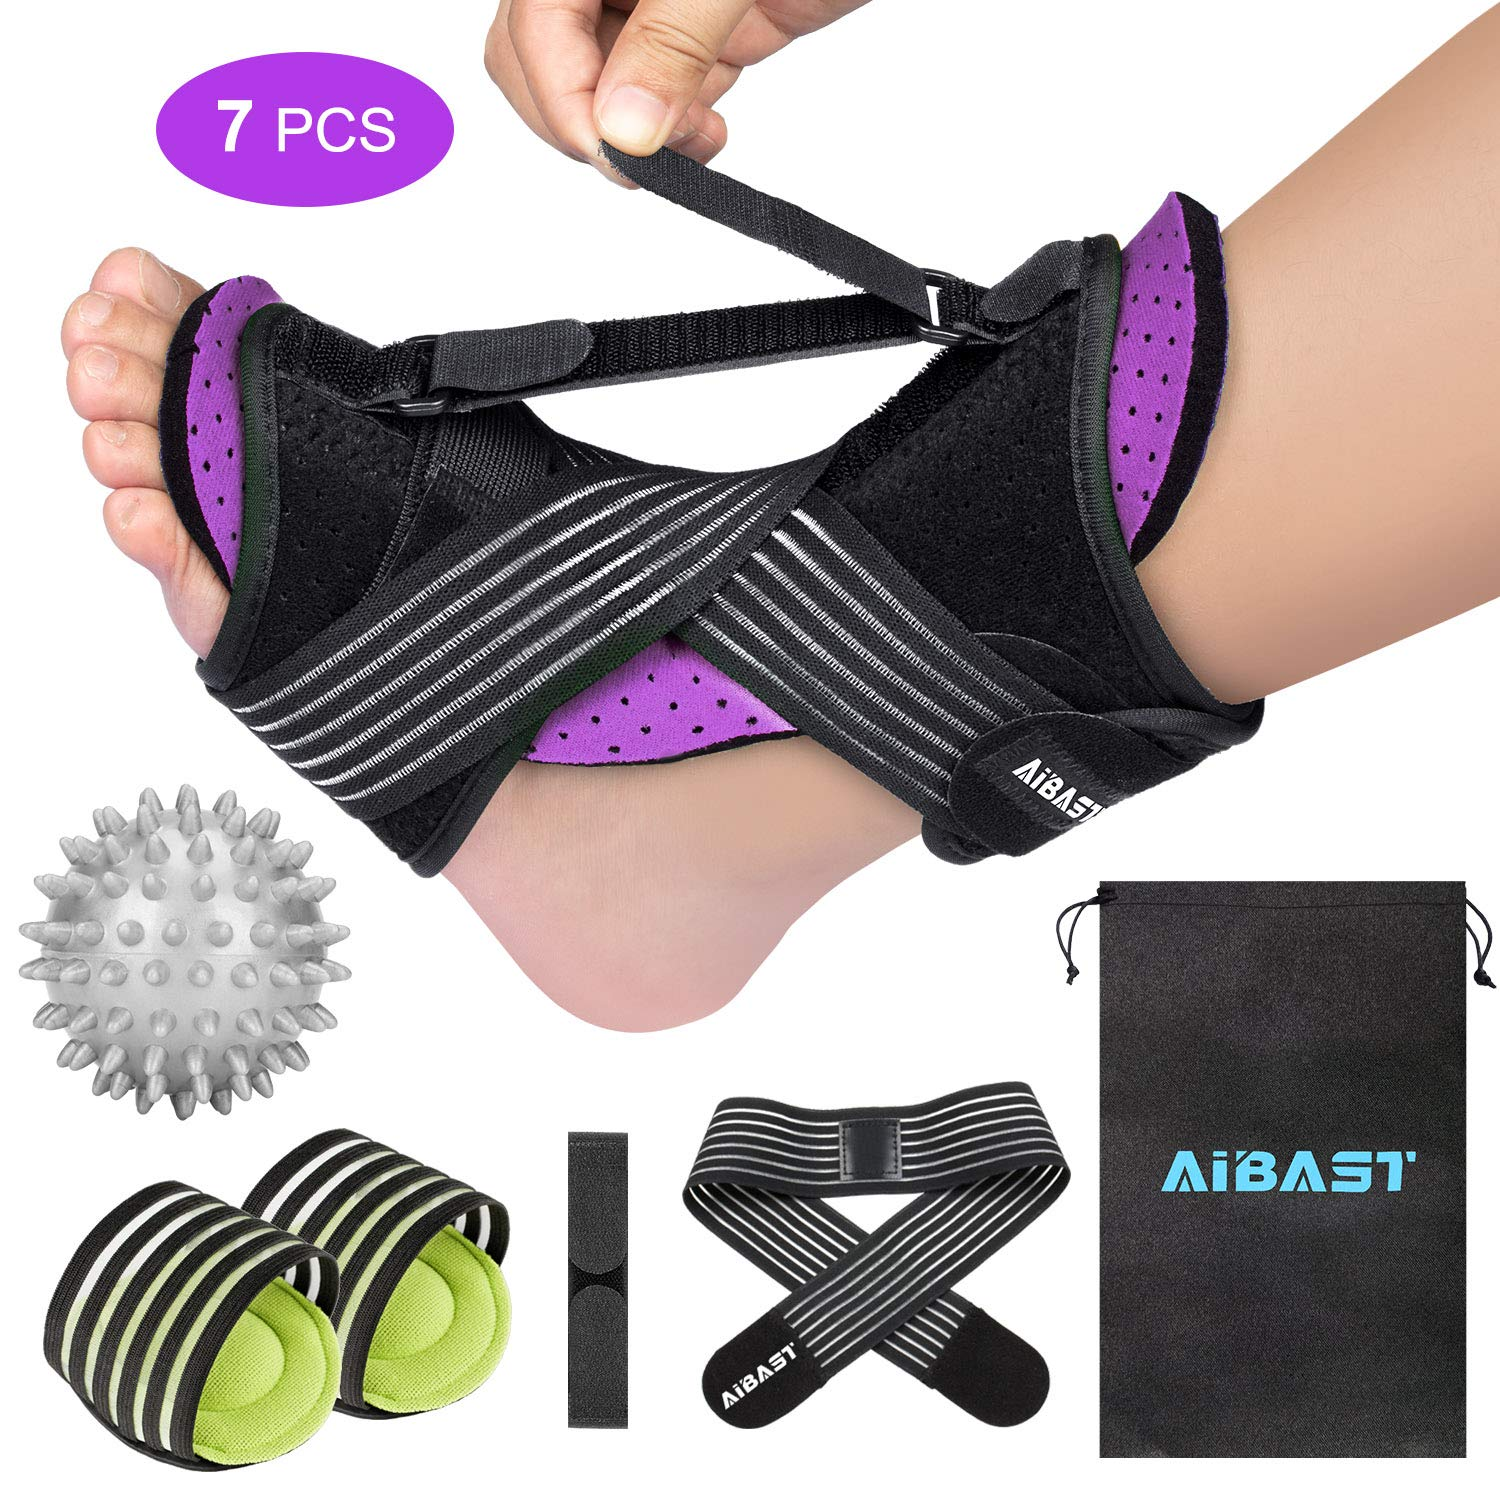 2020 New Upgraded Purple Night Splint for Plantar Fascitis, AiBast Adjustable Ankle Brace Foot Drop Orthotic Brace for Plantar Fasciitis, Arch Foot Pain, Achilles Tendonitis Support for Women, Men: Industrial & Scientific